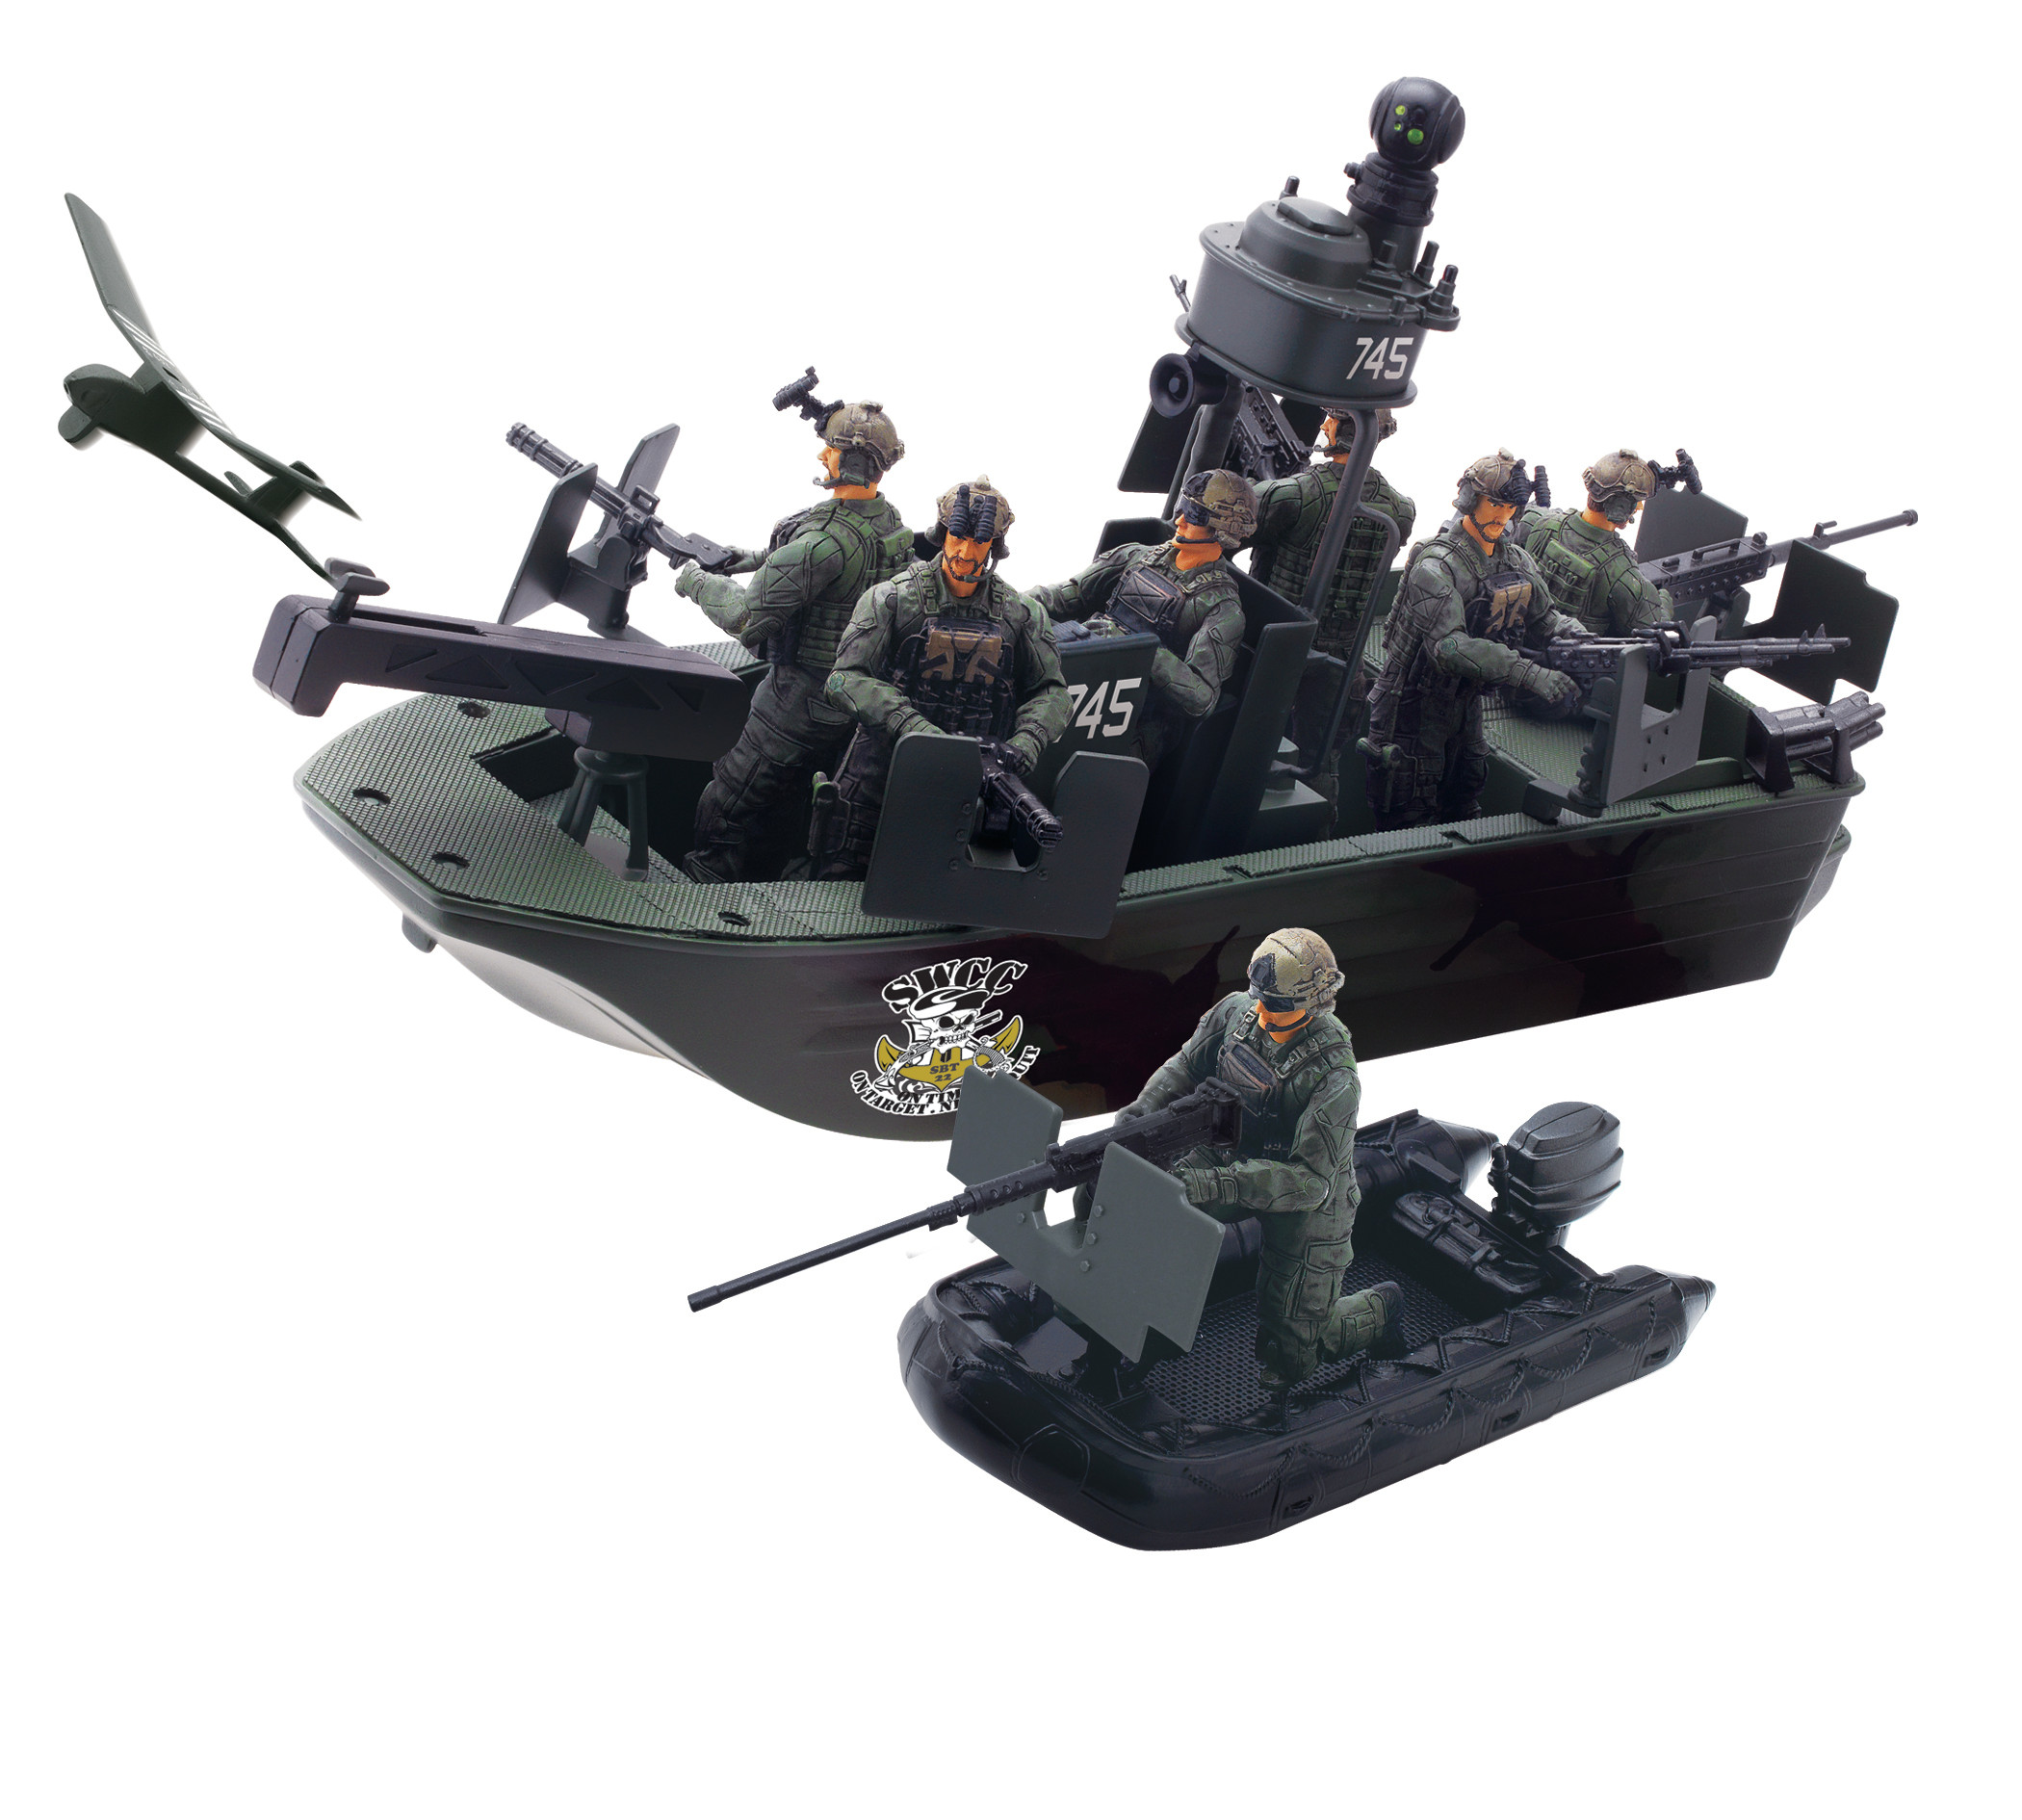 Blue Box Toys 118 Elite Force Air To Land Mission Naval